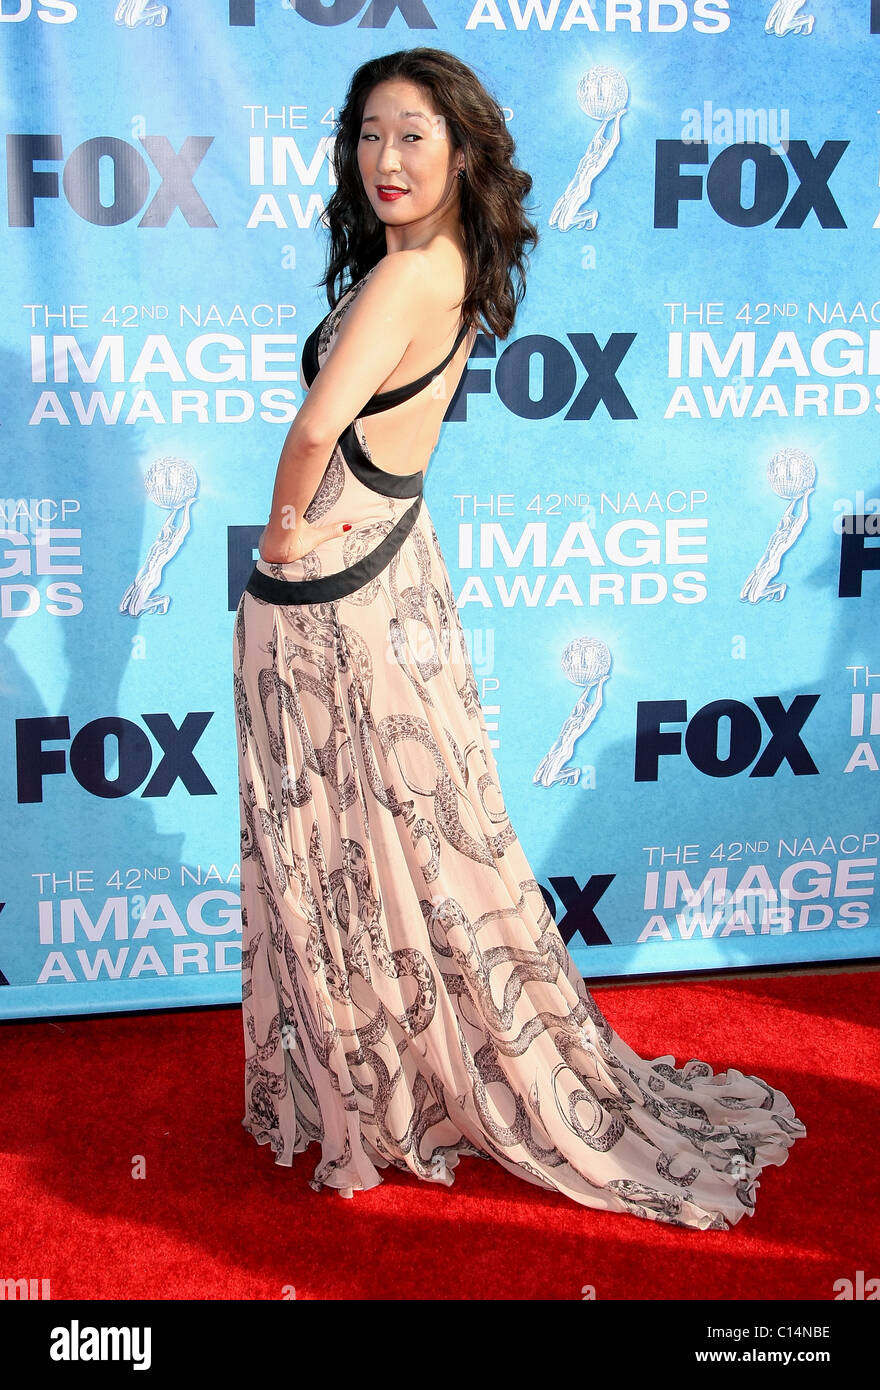 SNADRA OH 42ND NAACP IMAGE AWARDS ARRIVALS DOWNTOWN LOS ANGELES CALIFORNIA USA 04 March 2011 - Stock Image